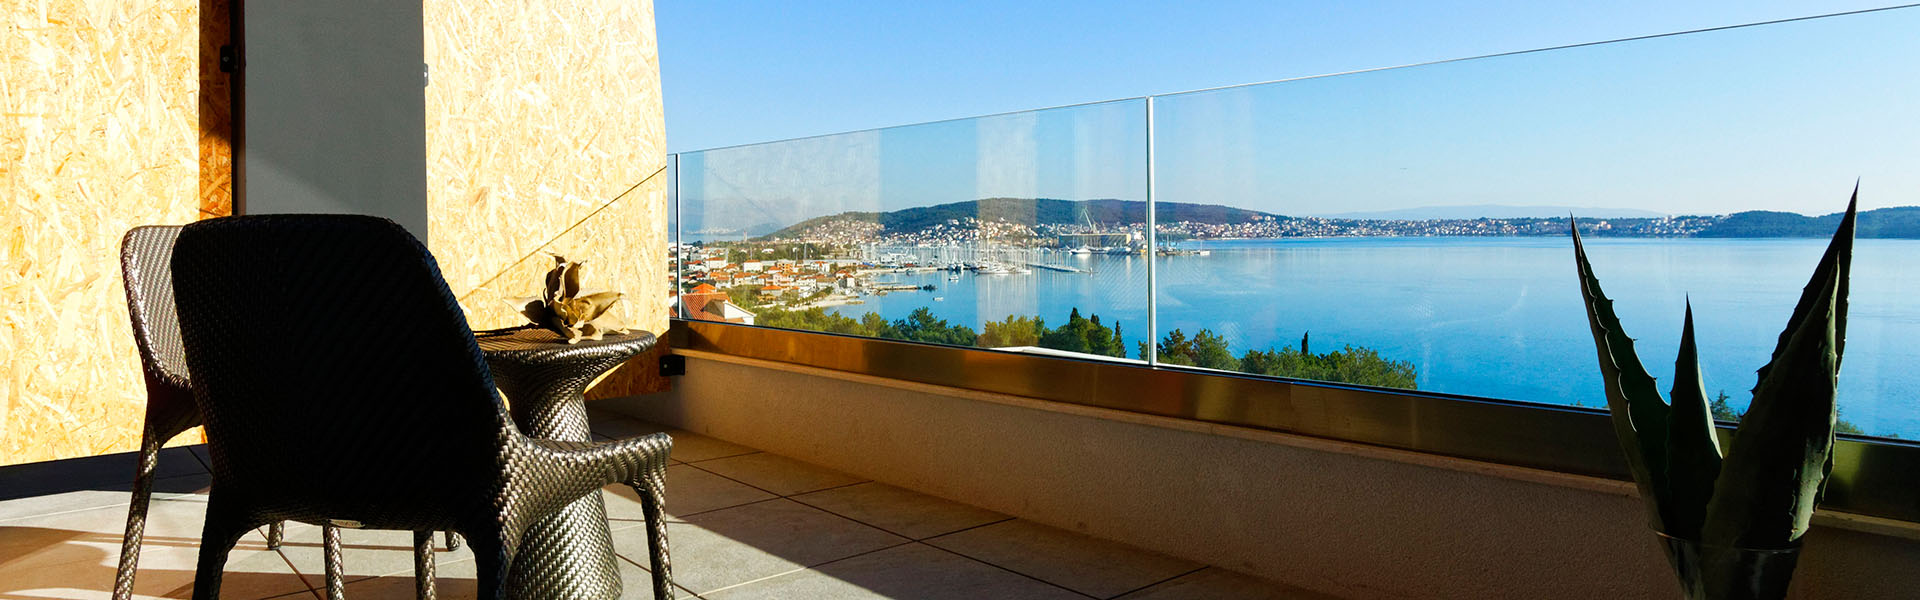 standard hotel room with sea view Croatia